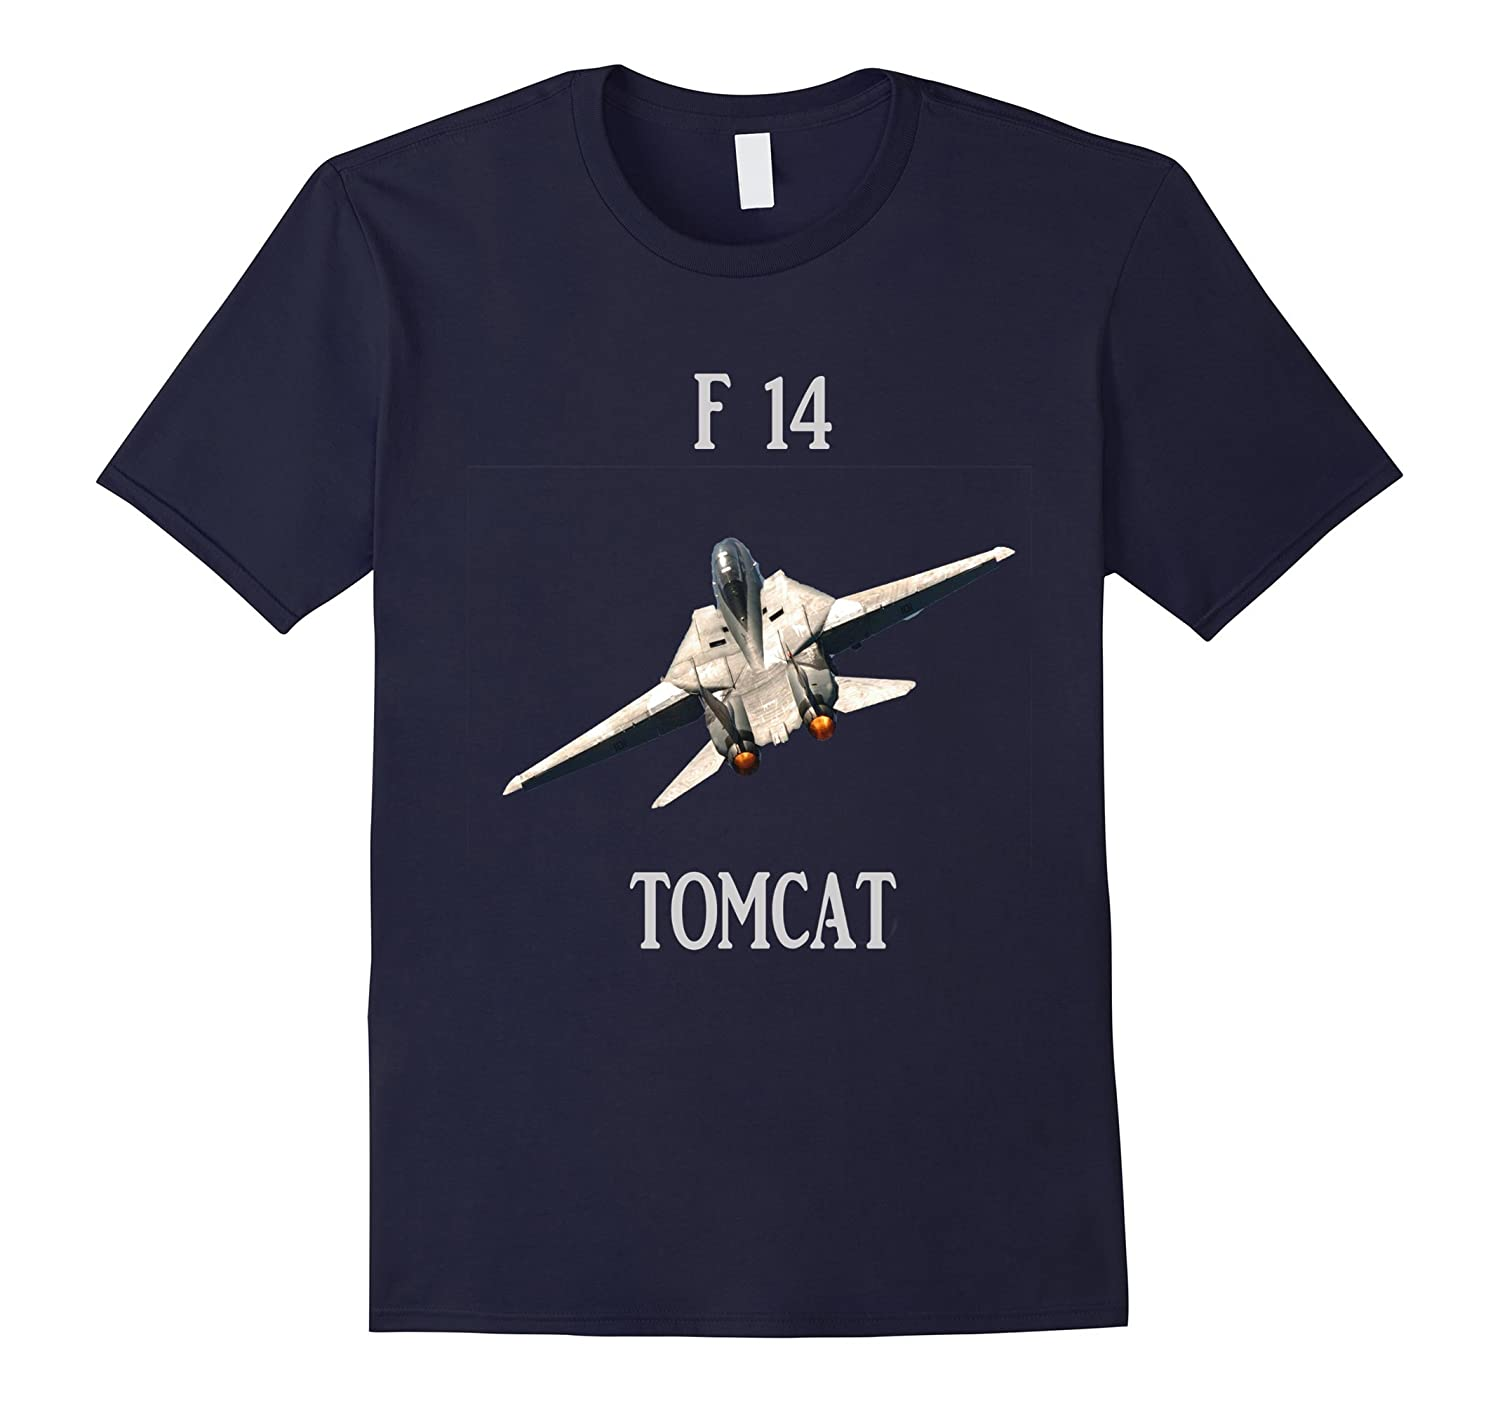 F 14 TOMCAT MILITARY JET AIRPLANE T-SHIRT-Art